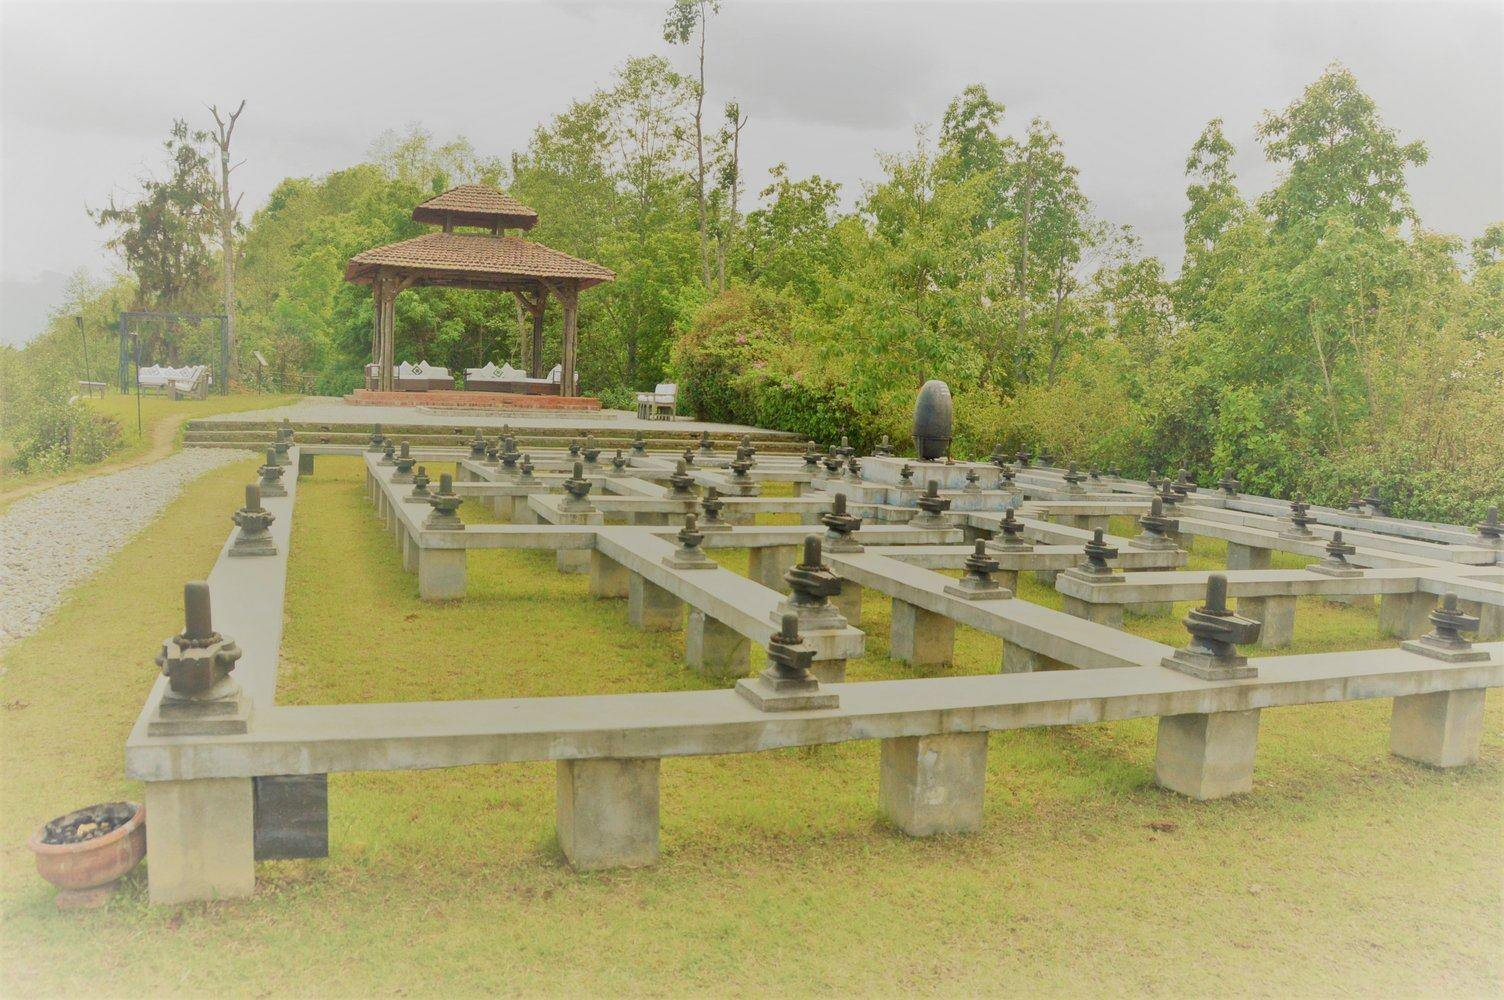 outdoor meditation maze at dwarika's resort dhulikhel